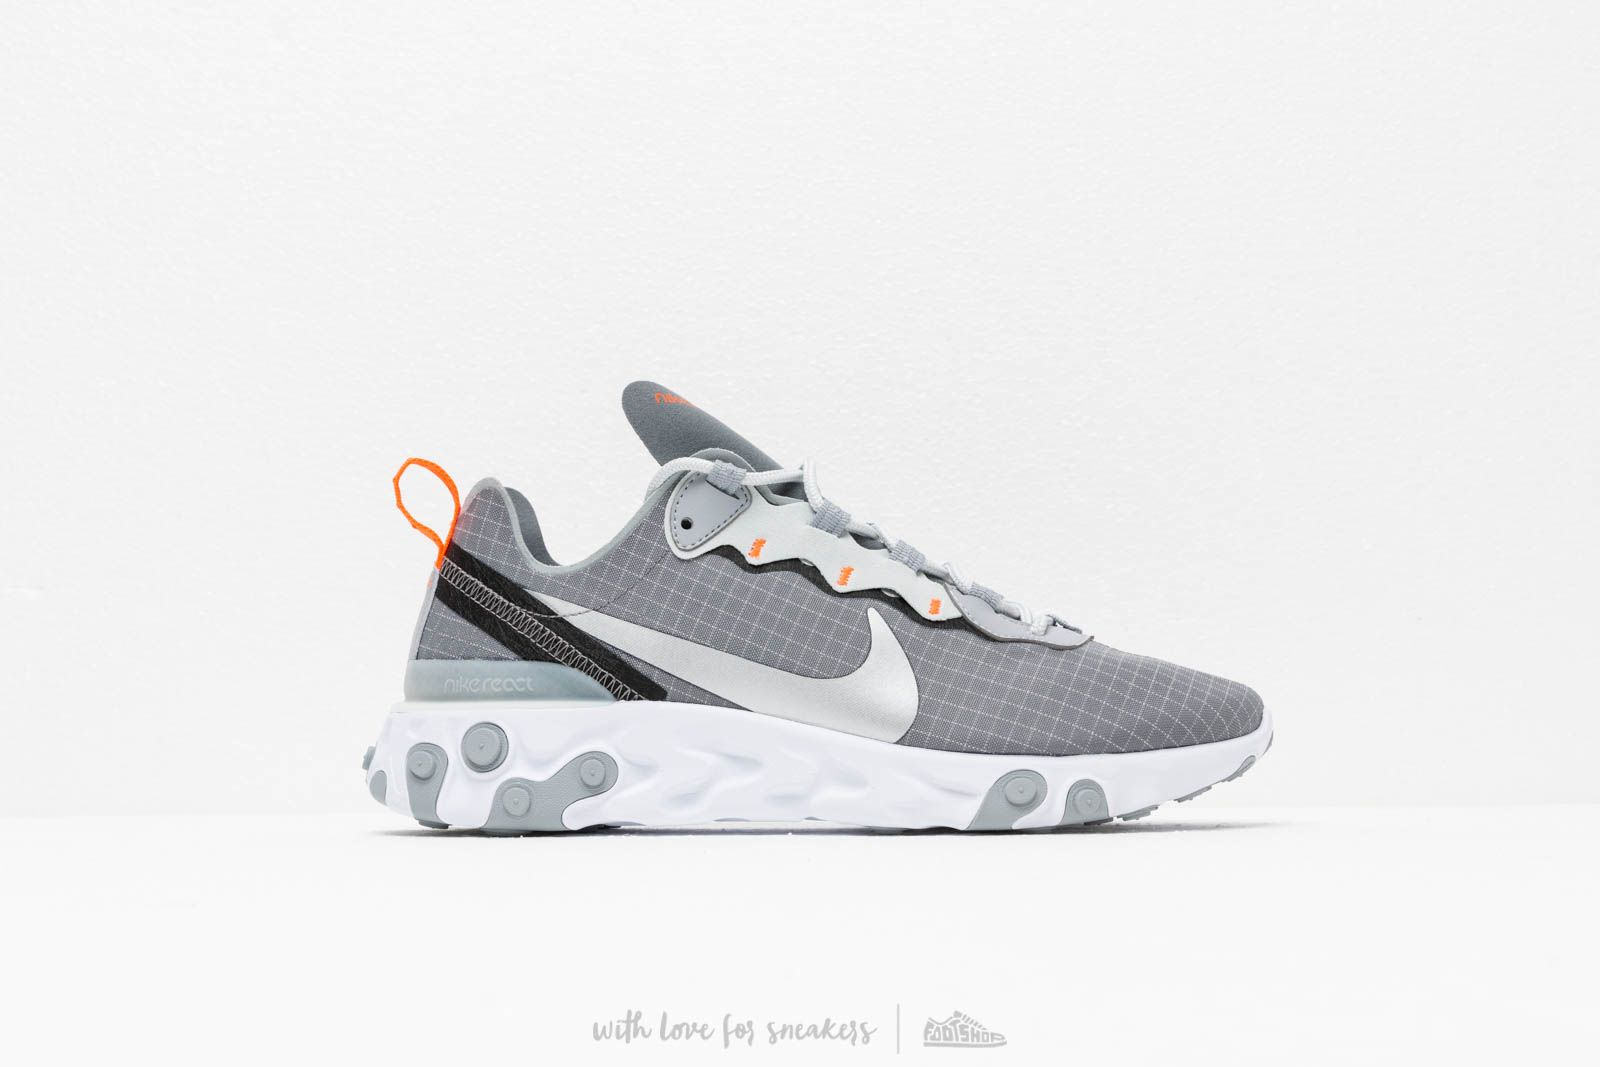 low priced aef92 ccf55 Nike React Element 55 Cool Grey  Metallic Silver-Hyper Crimson at a great  price